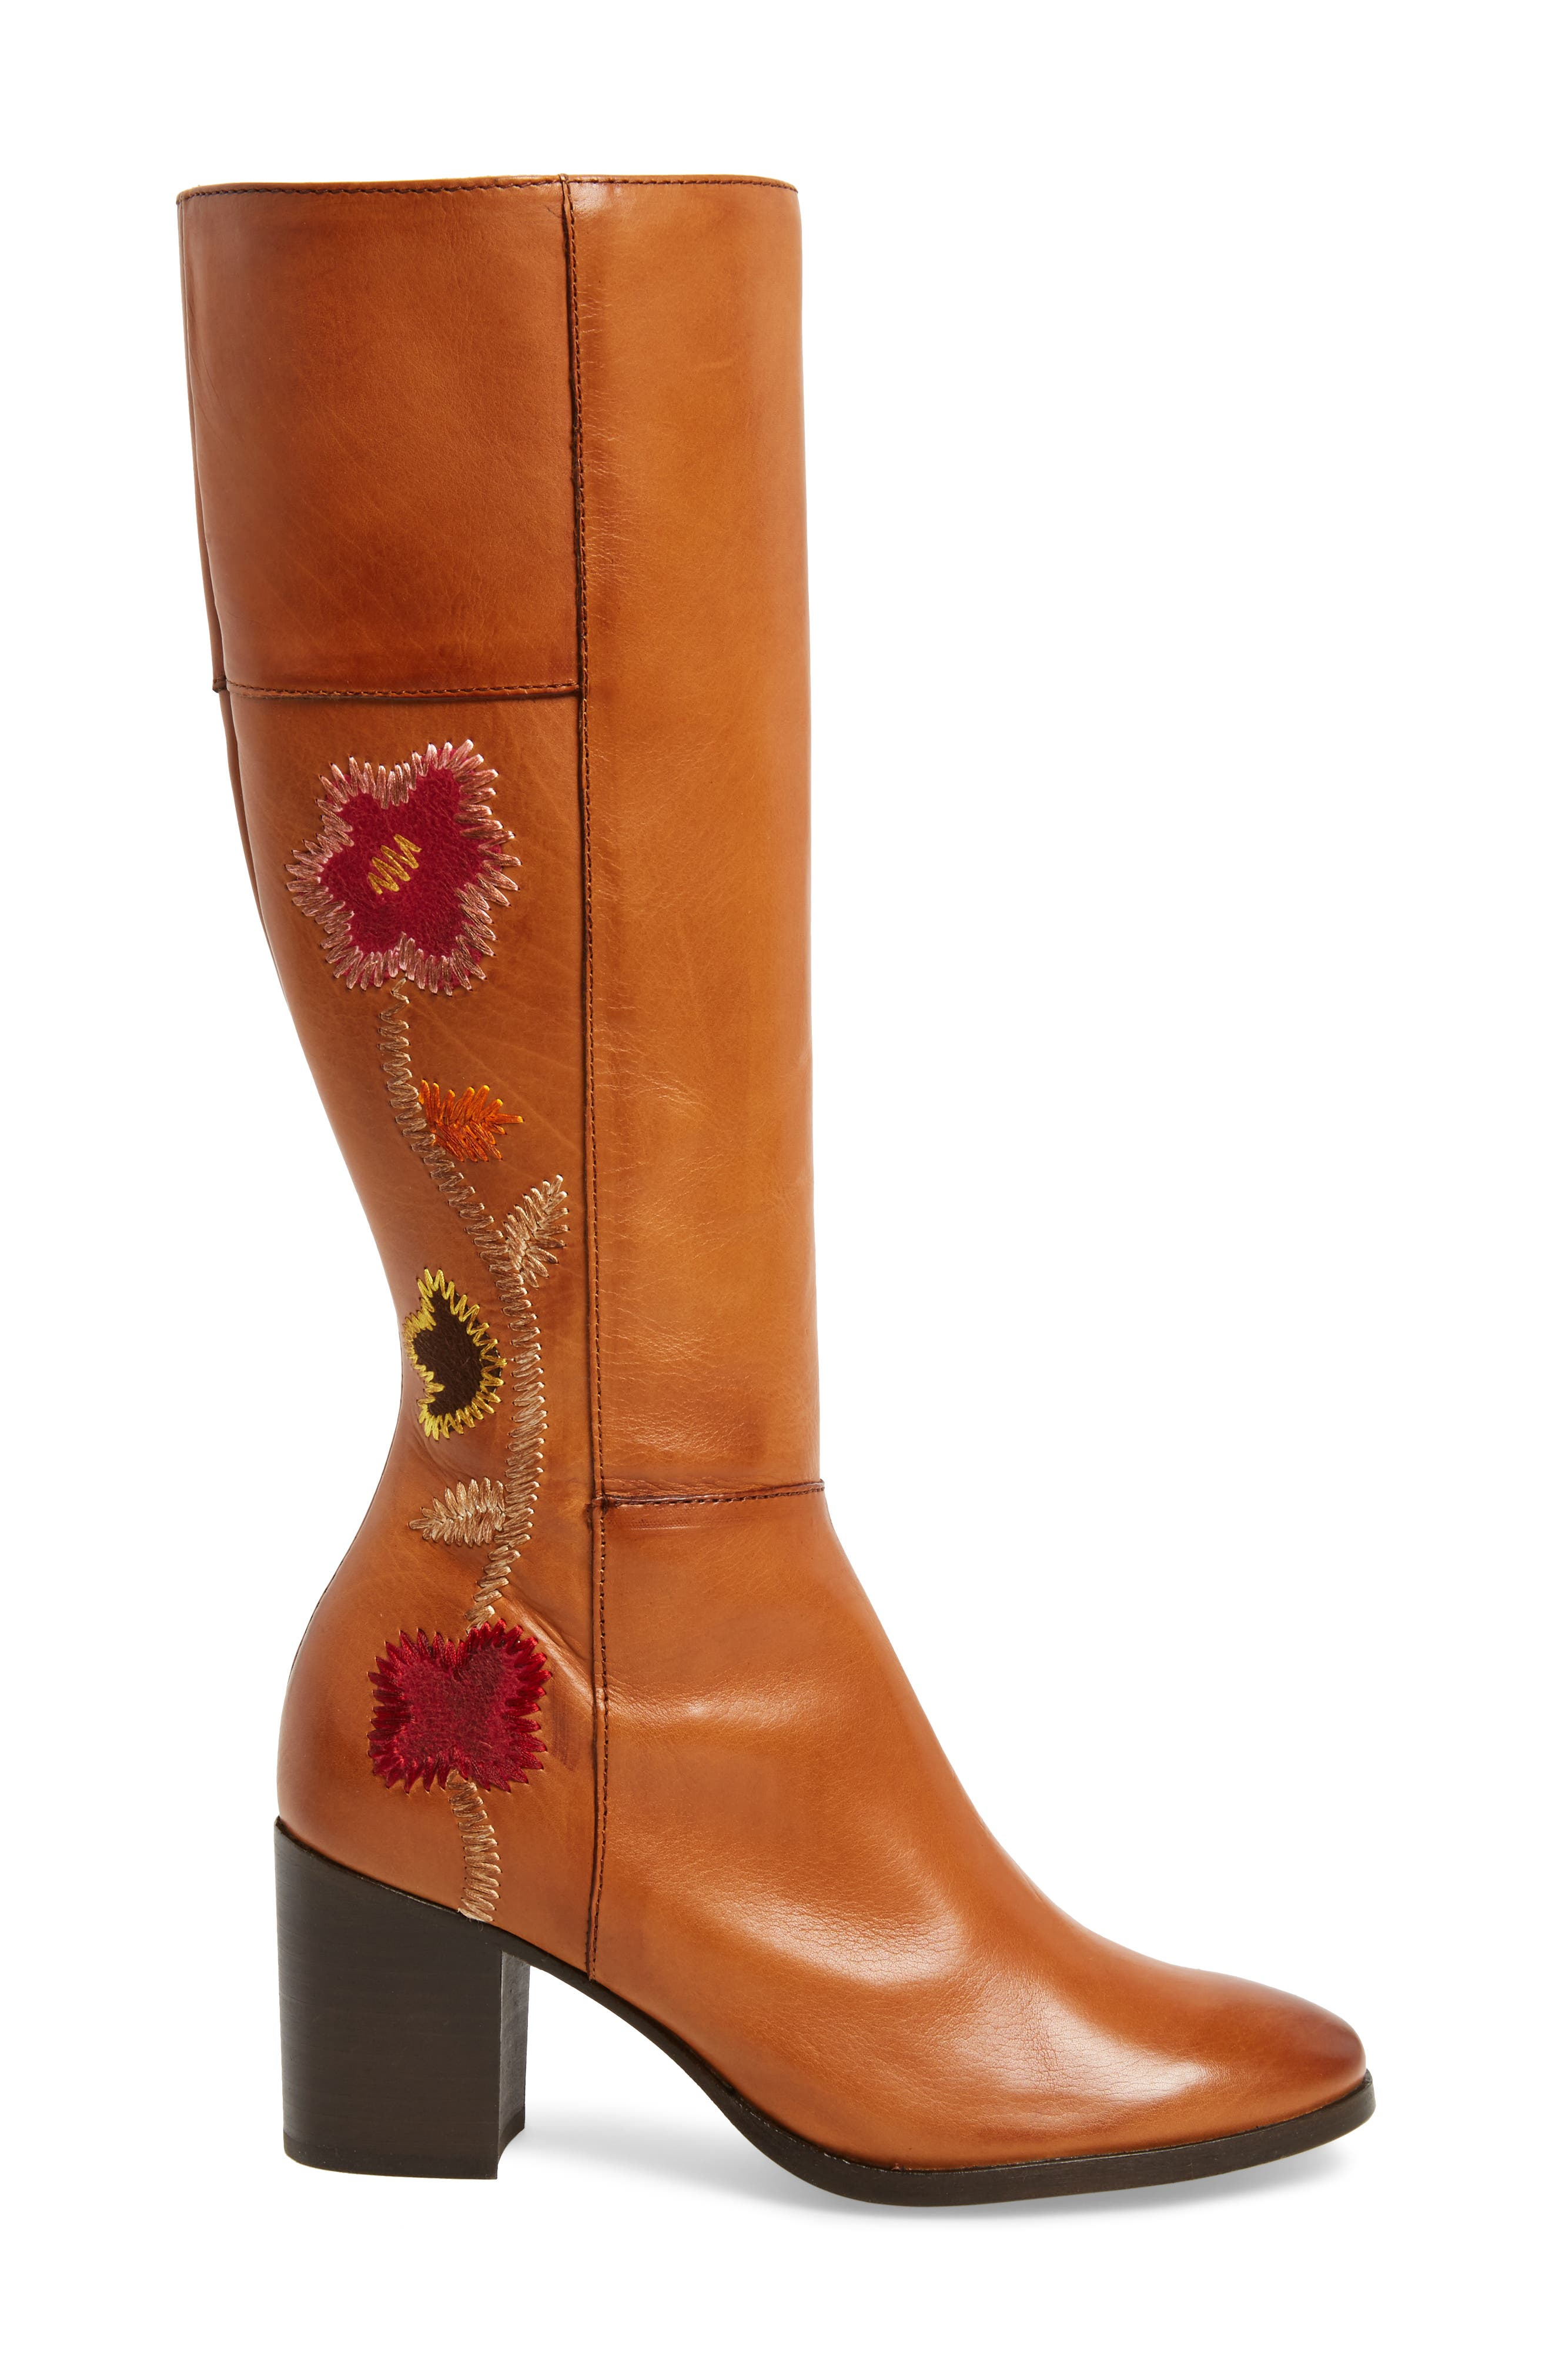 Nova Floral Embroidered Knee High Boot,                             Alternate thumbnail 3, color,                             238